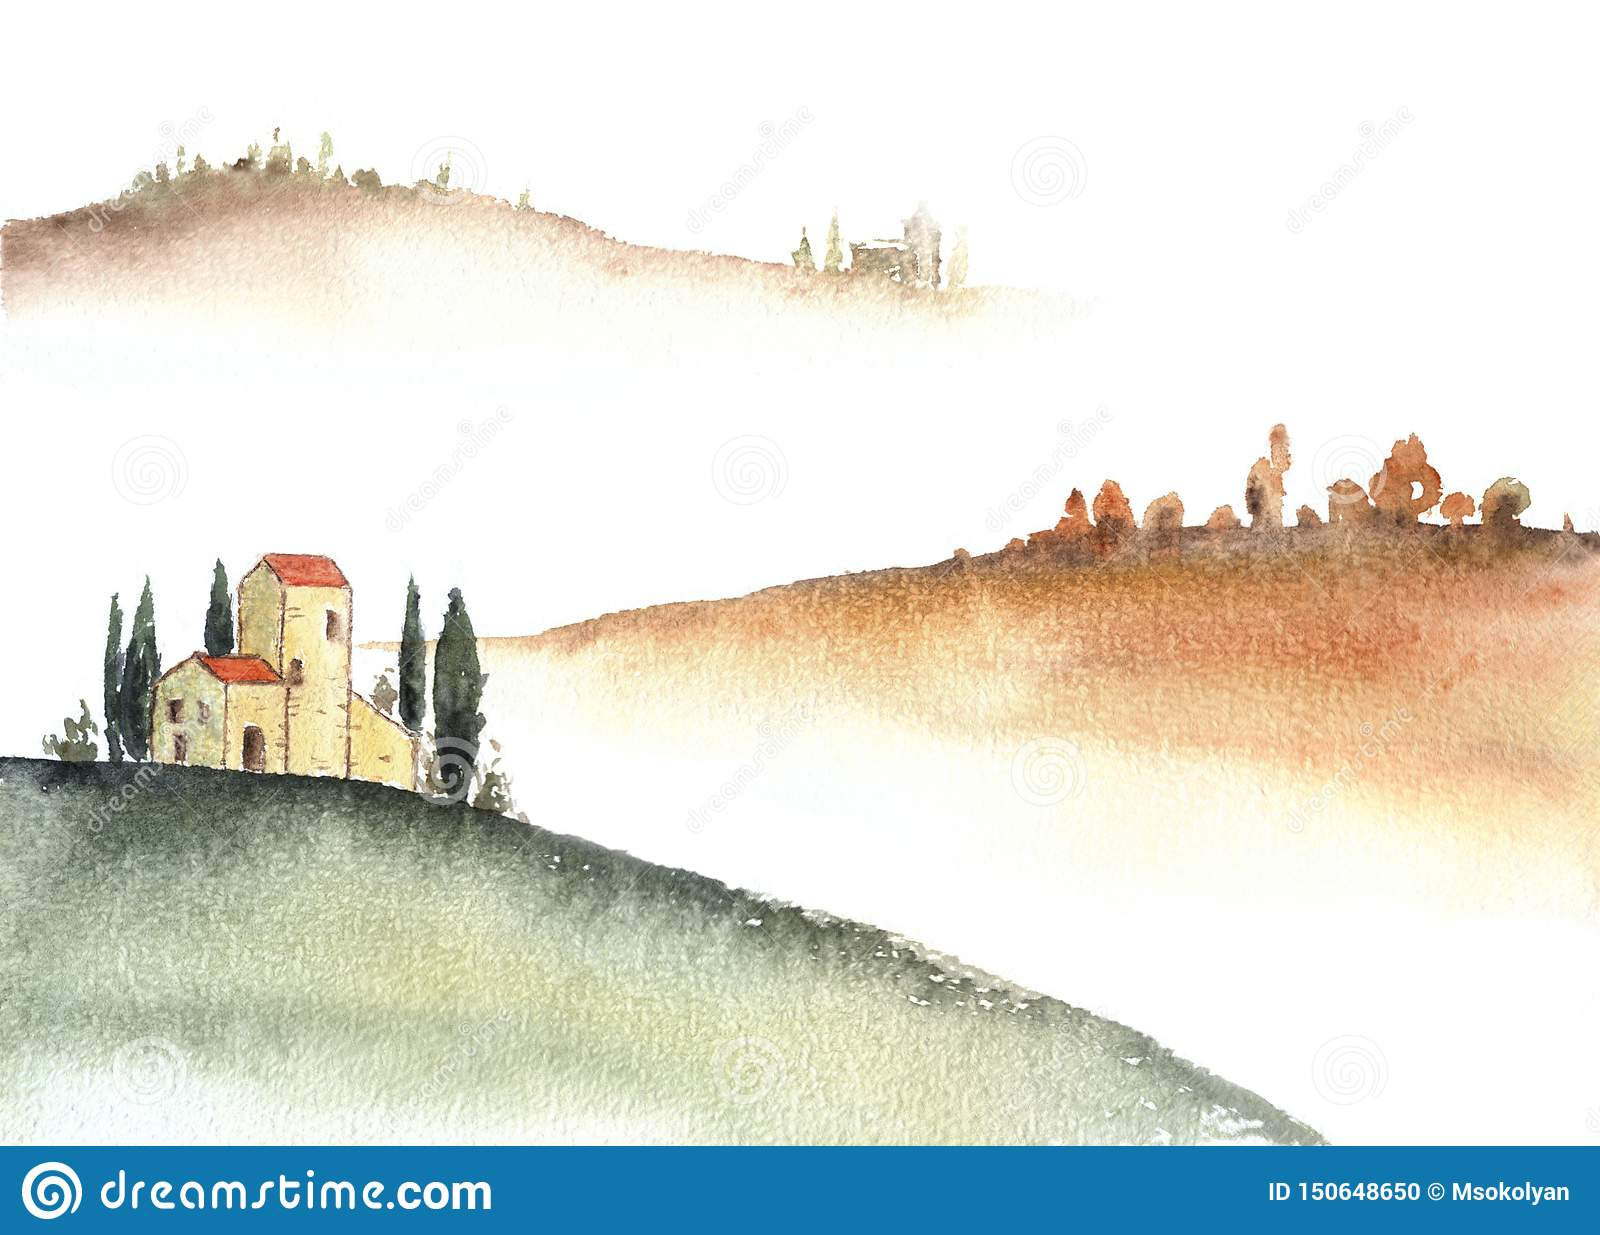 Tuscan villa and distant hills landscape watercolor painting.